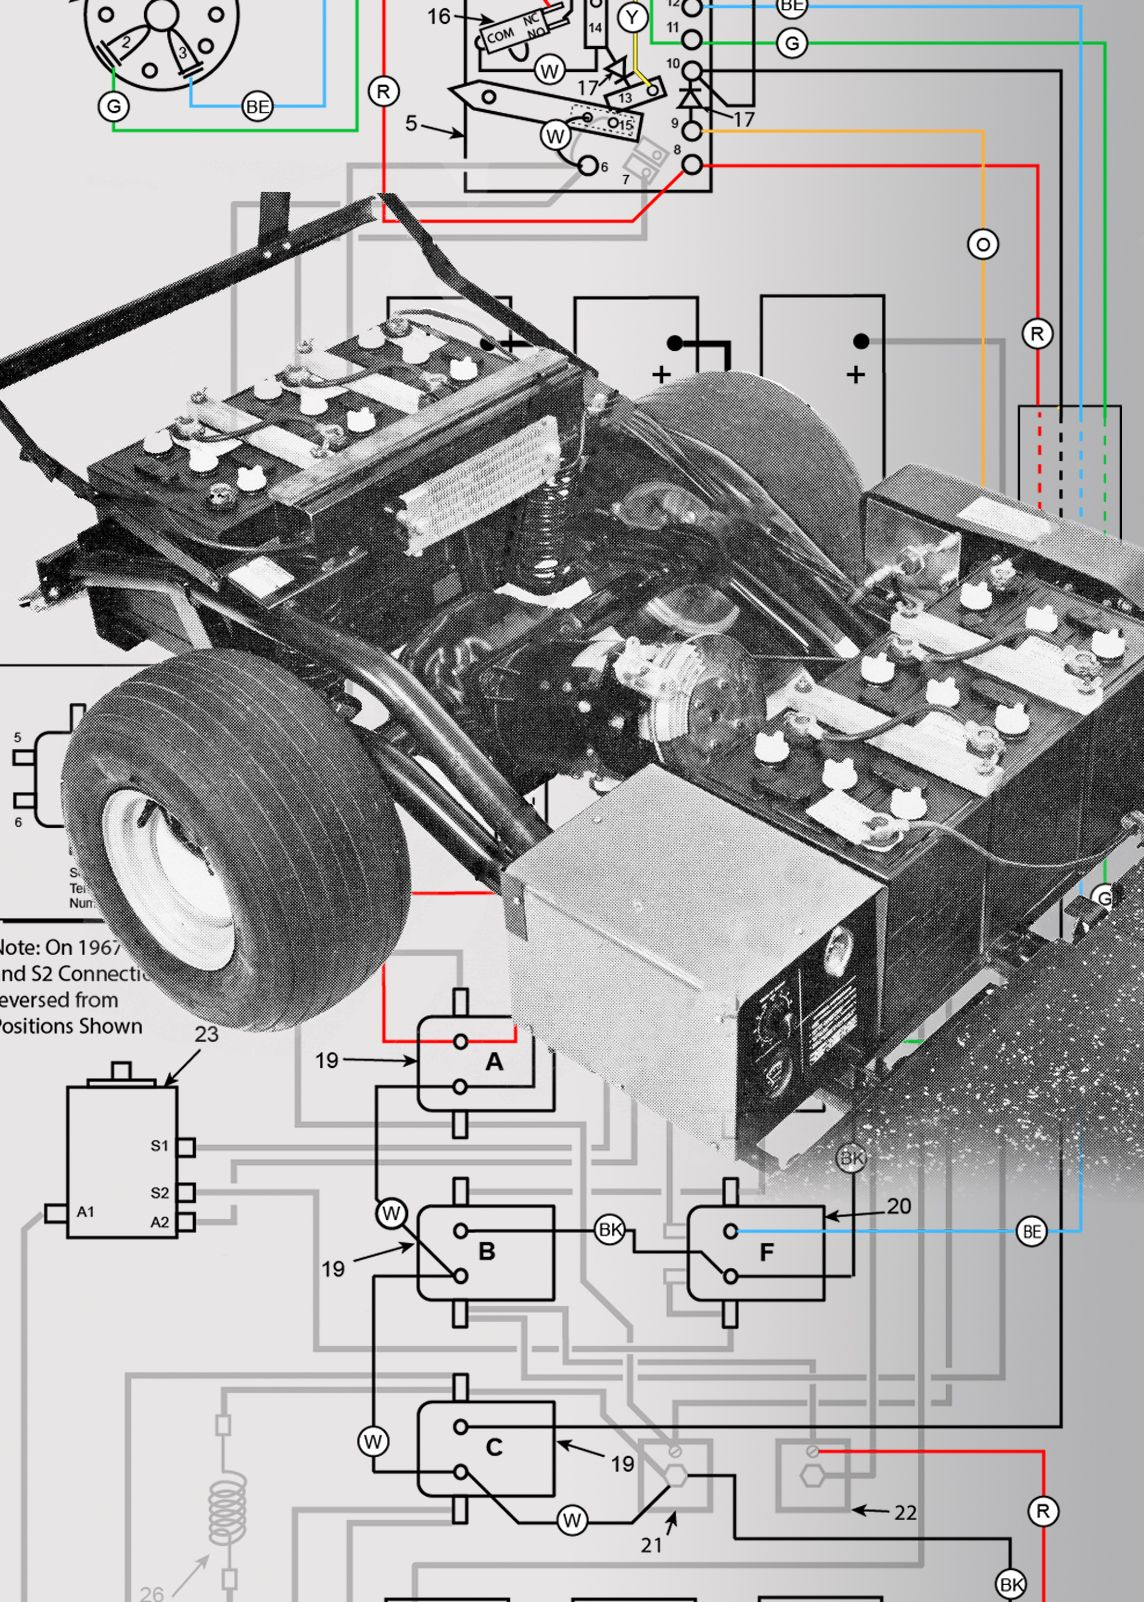 Colora Coded Wiring Diagram For 1967 Through 1970 Harley Davidson De Model Golf Carts Carrito De Golf Plano Electrico Golf